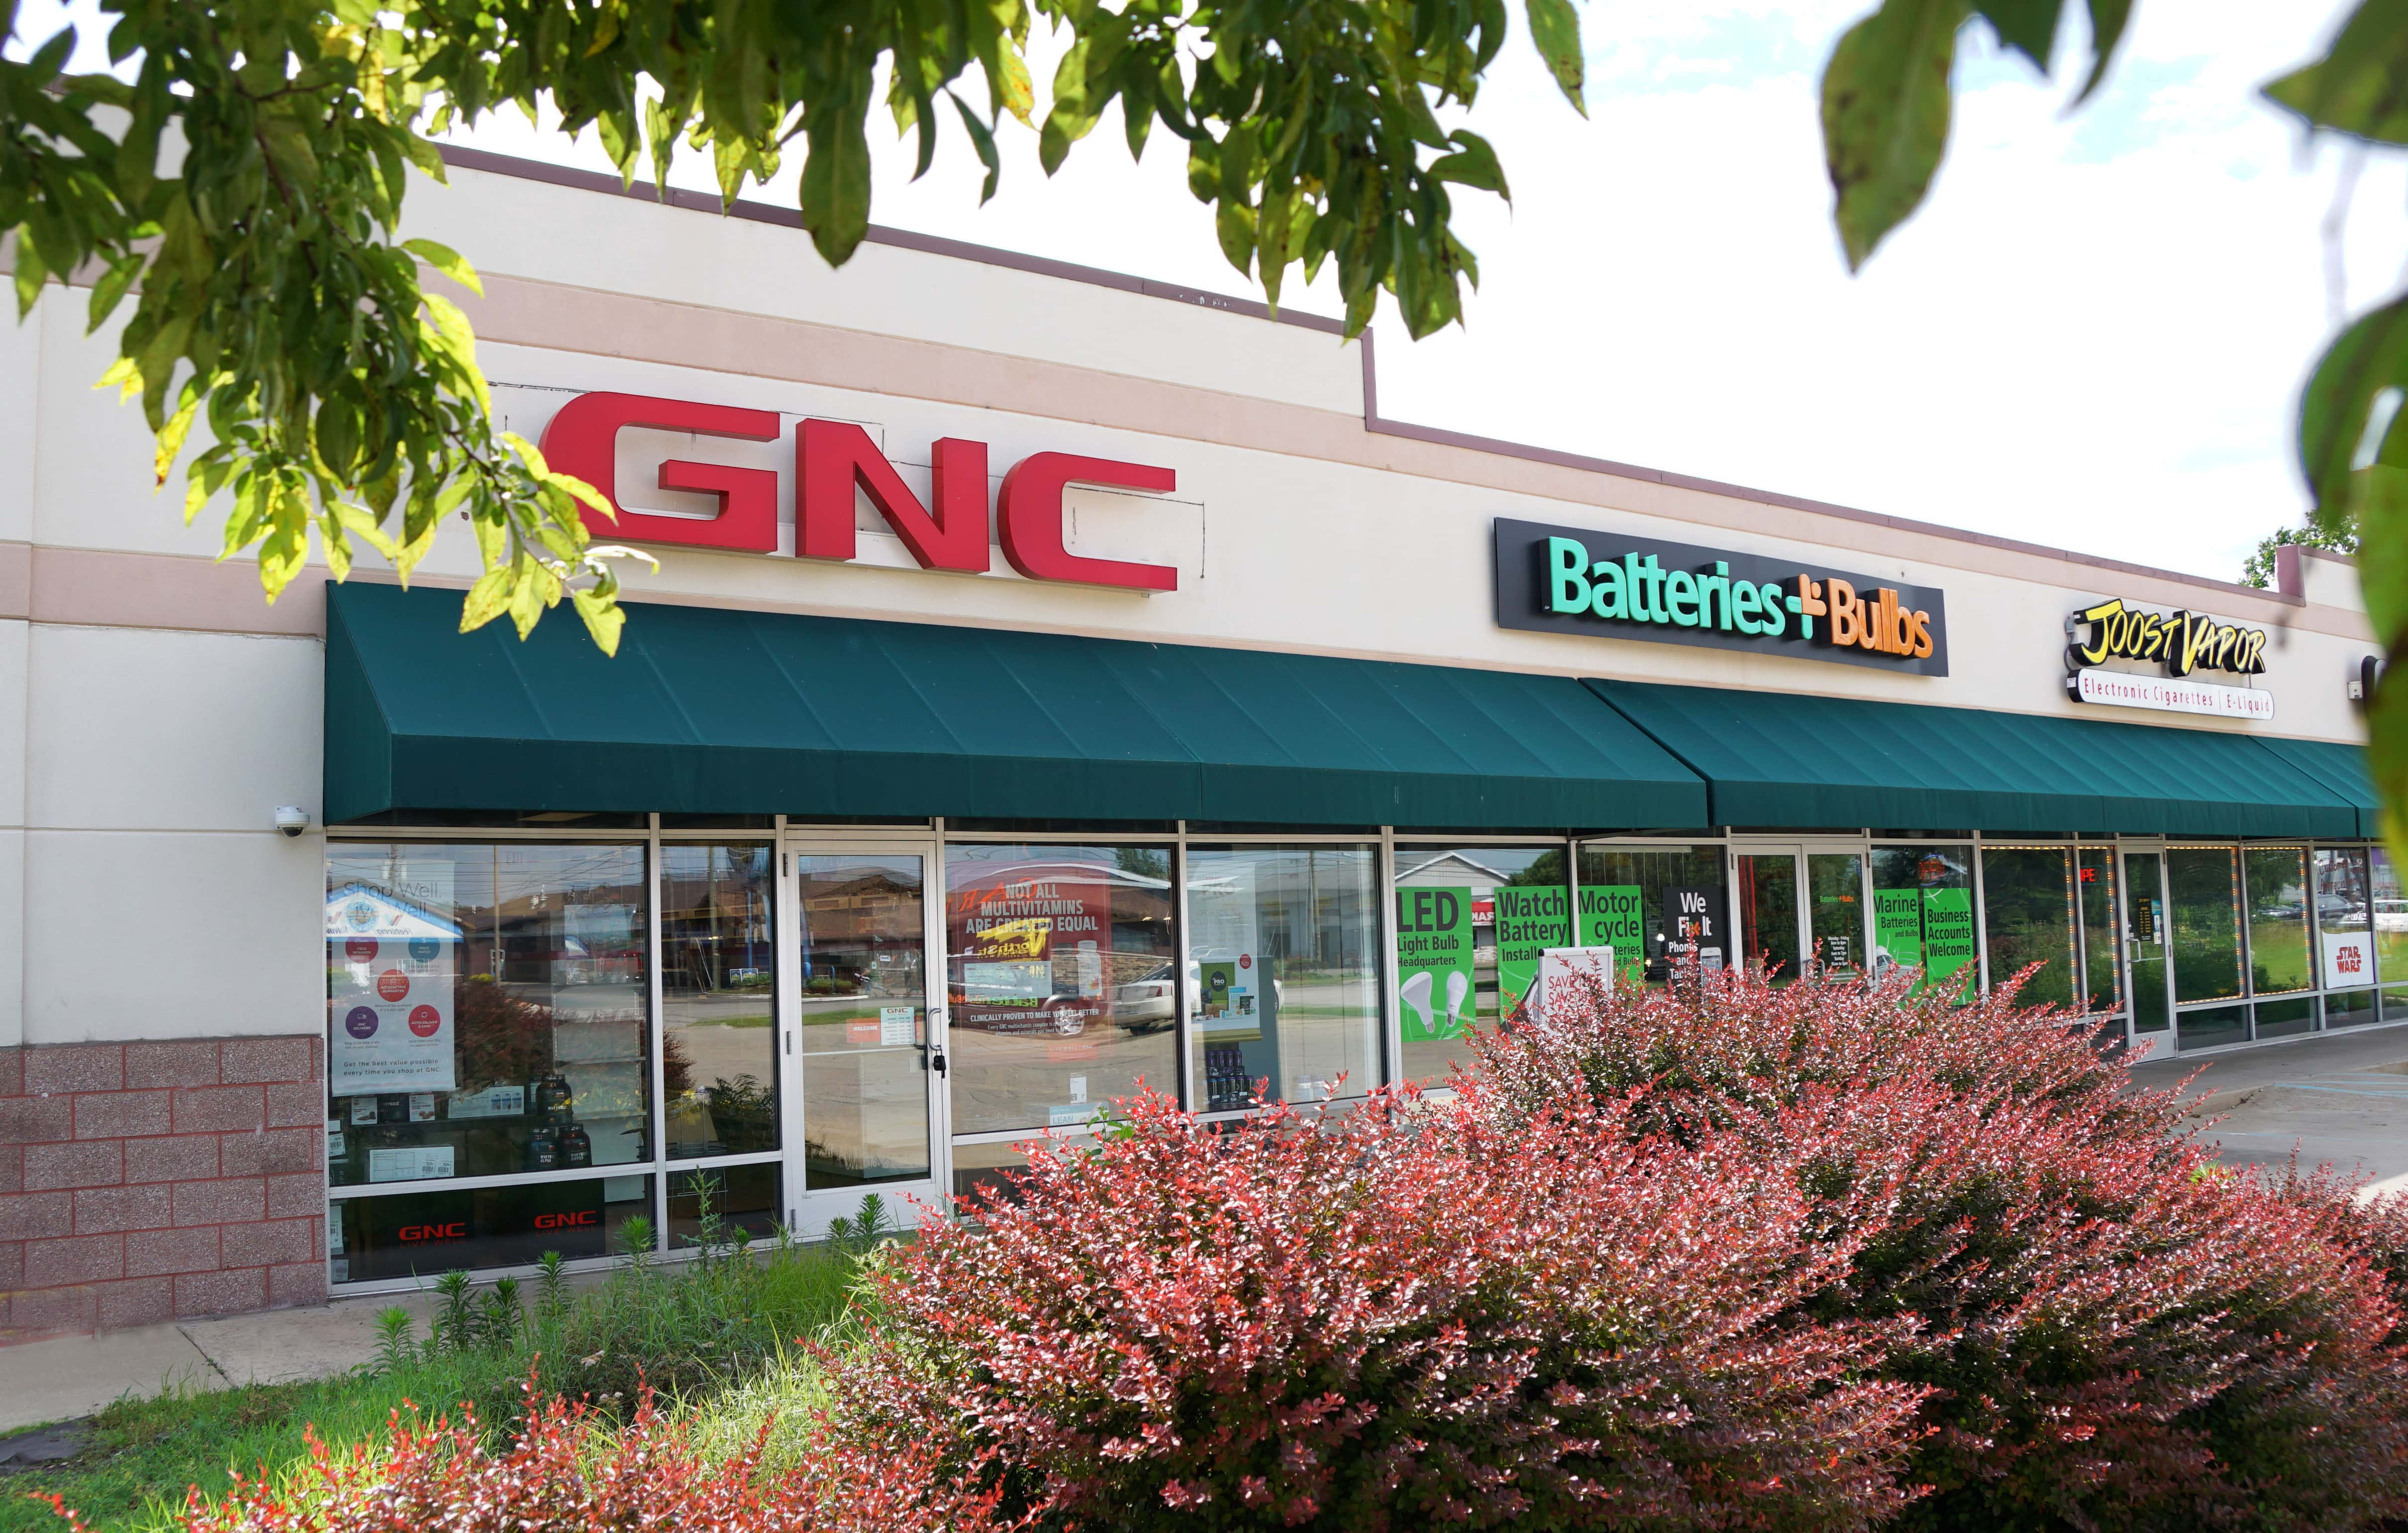 After Holding Court For Nearly 39 Years In The Orchards Mall General Nutrition Center Or Simply Gnc Has Relocated To The Front Lot Of The Fairplain